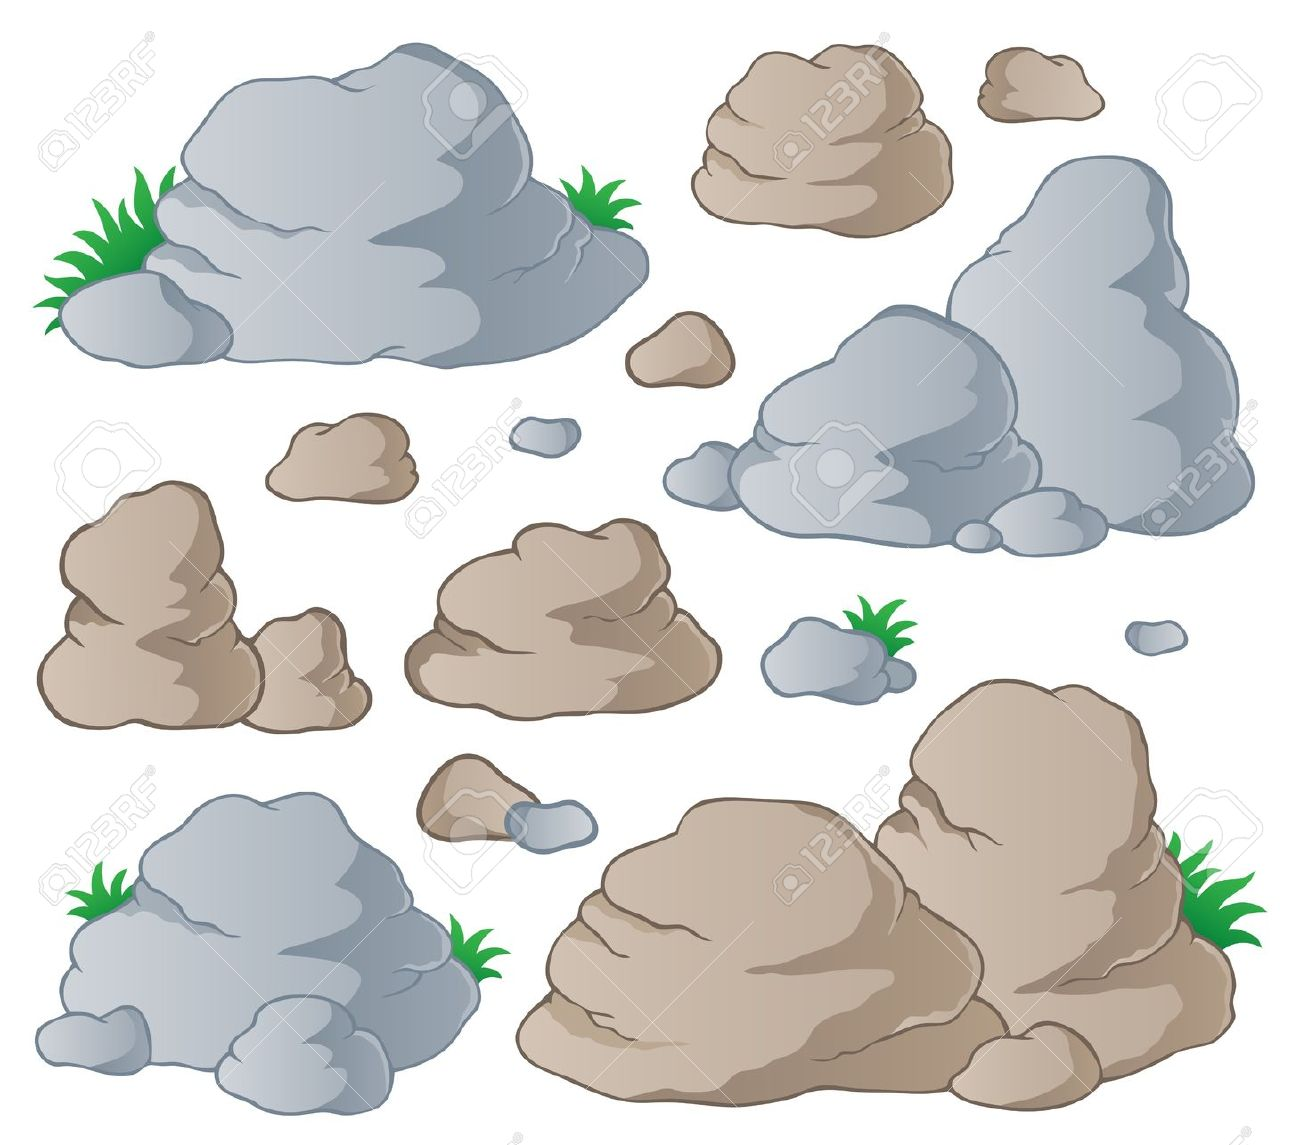 Stone clipart #9, Download drawings